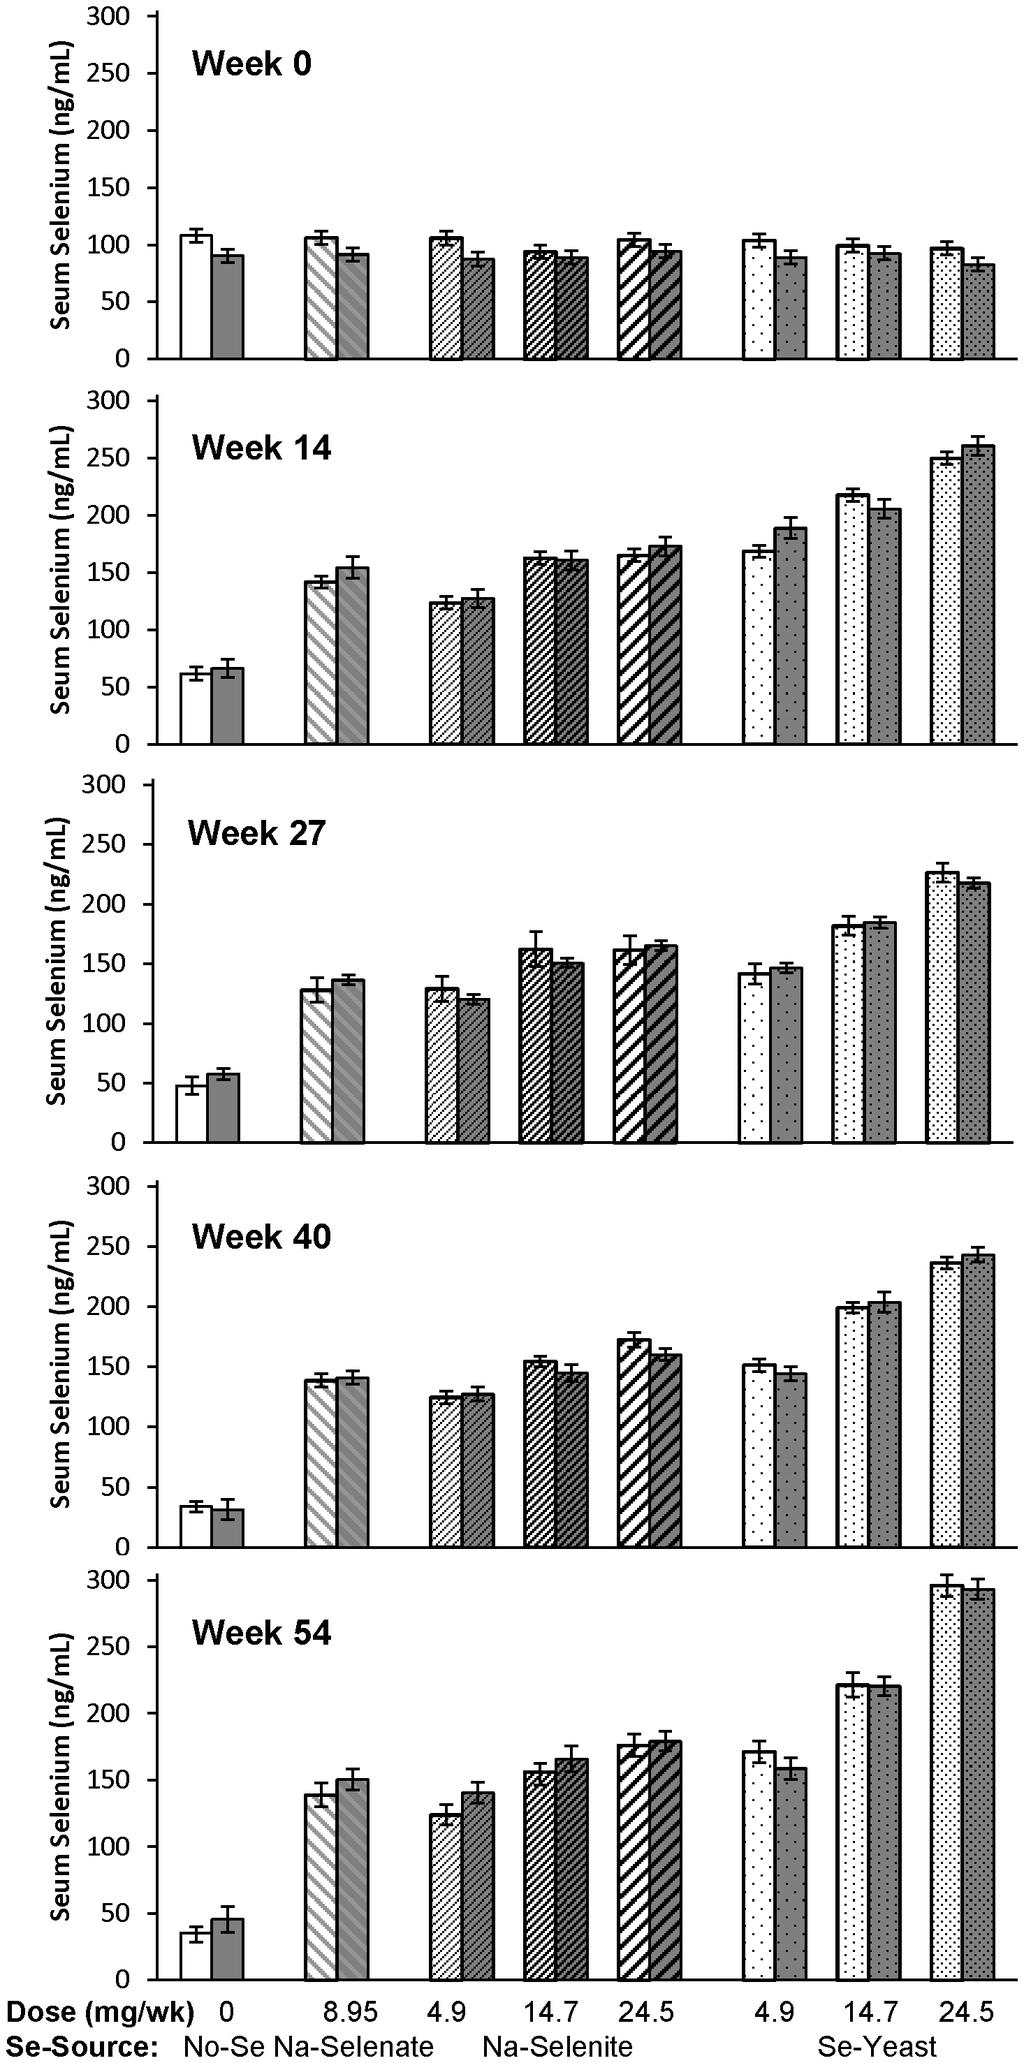 Figure 3. The effect of Se-source, Se-dosage, and foot rot status on serum-se concentrations in sheep.